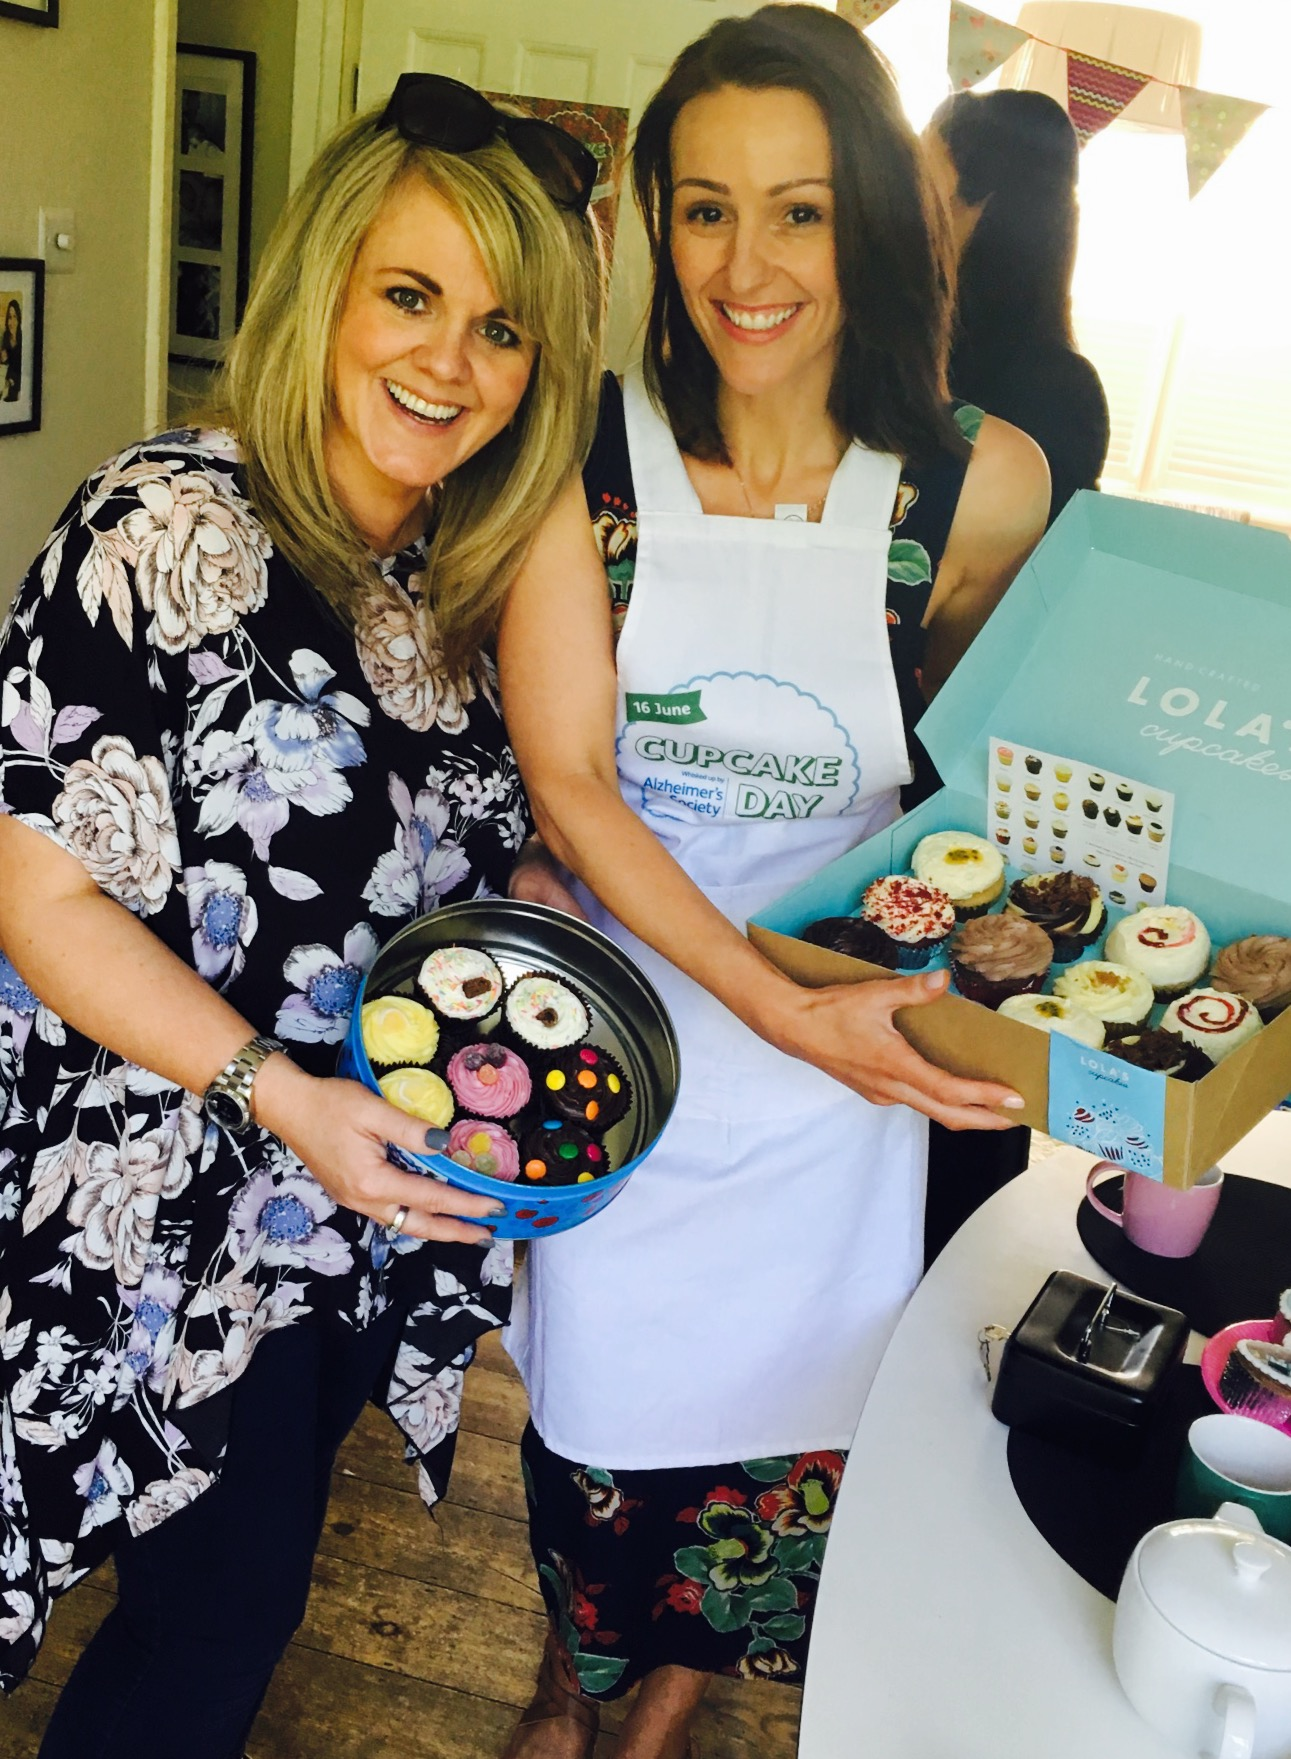 """Suranne Jones and Sally Lindsay display cupcakes on sale at Surannes  Cupcake Day party """""""